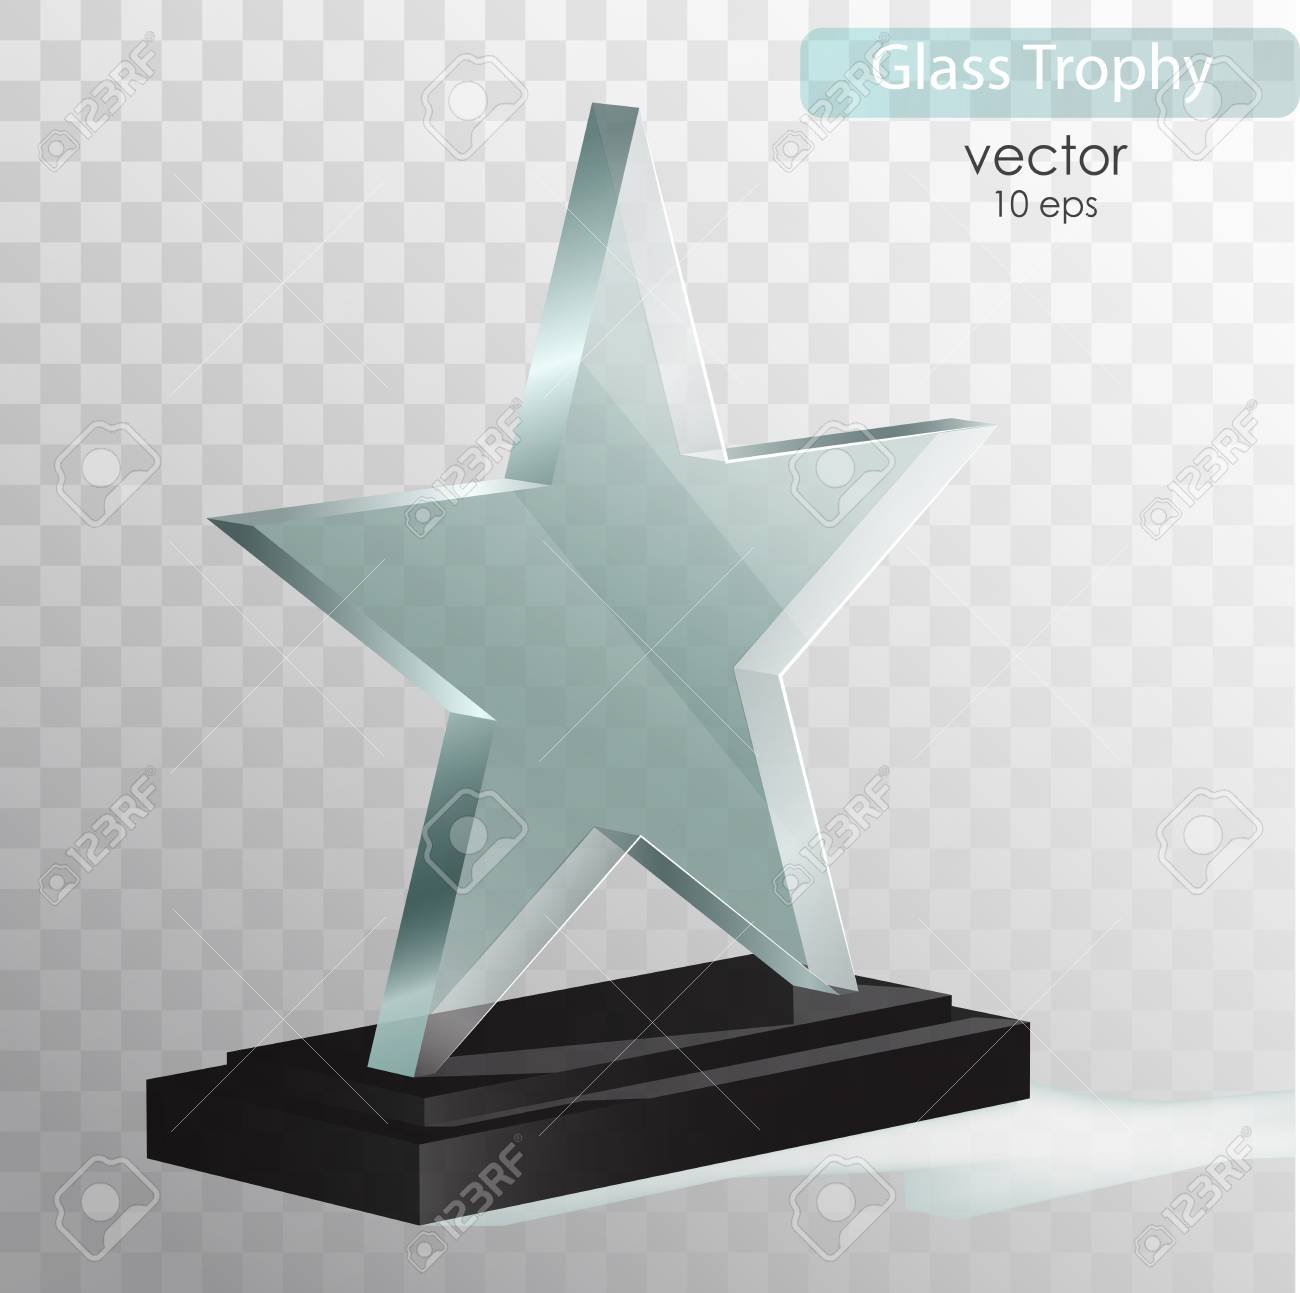 Glass Trophy Award Vector Illustration Isolated On Transparent Background Realistic 3D Design